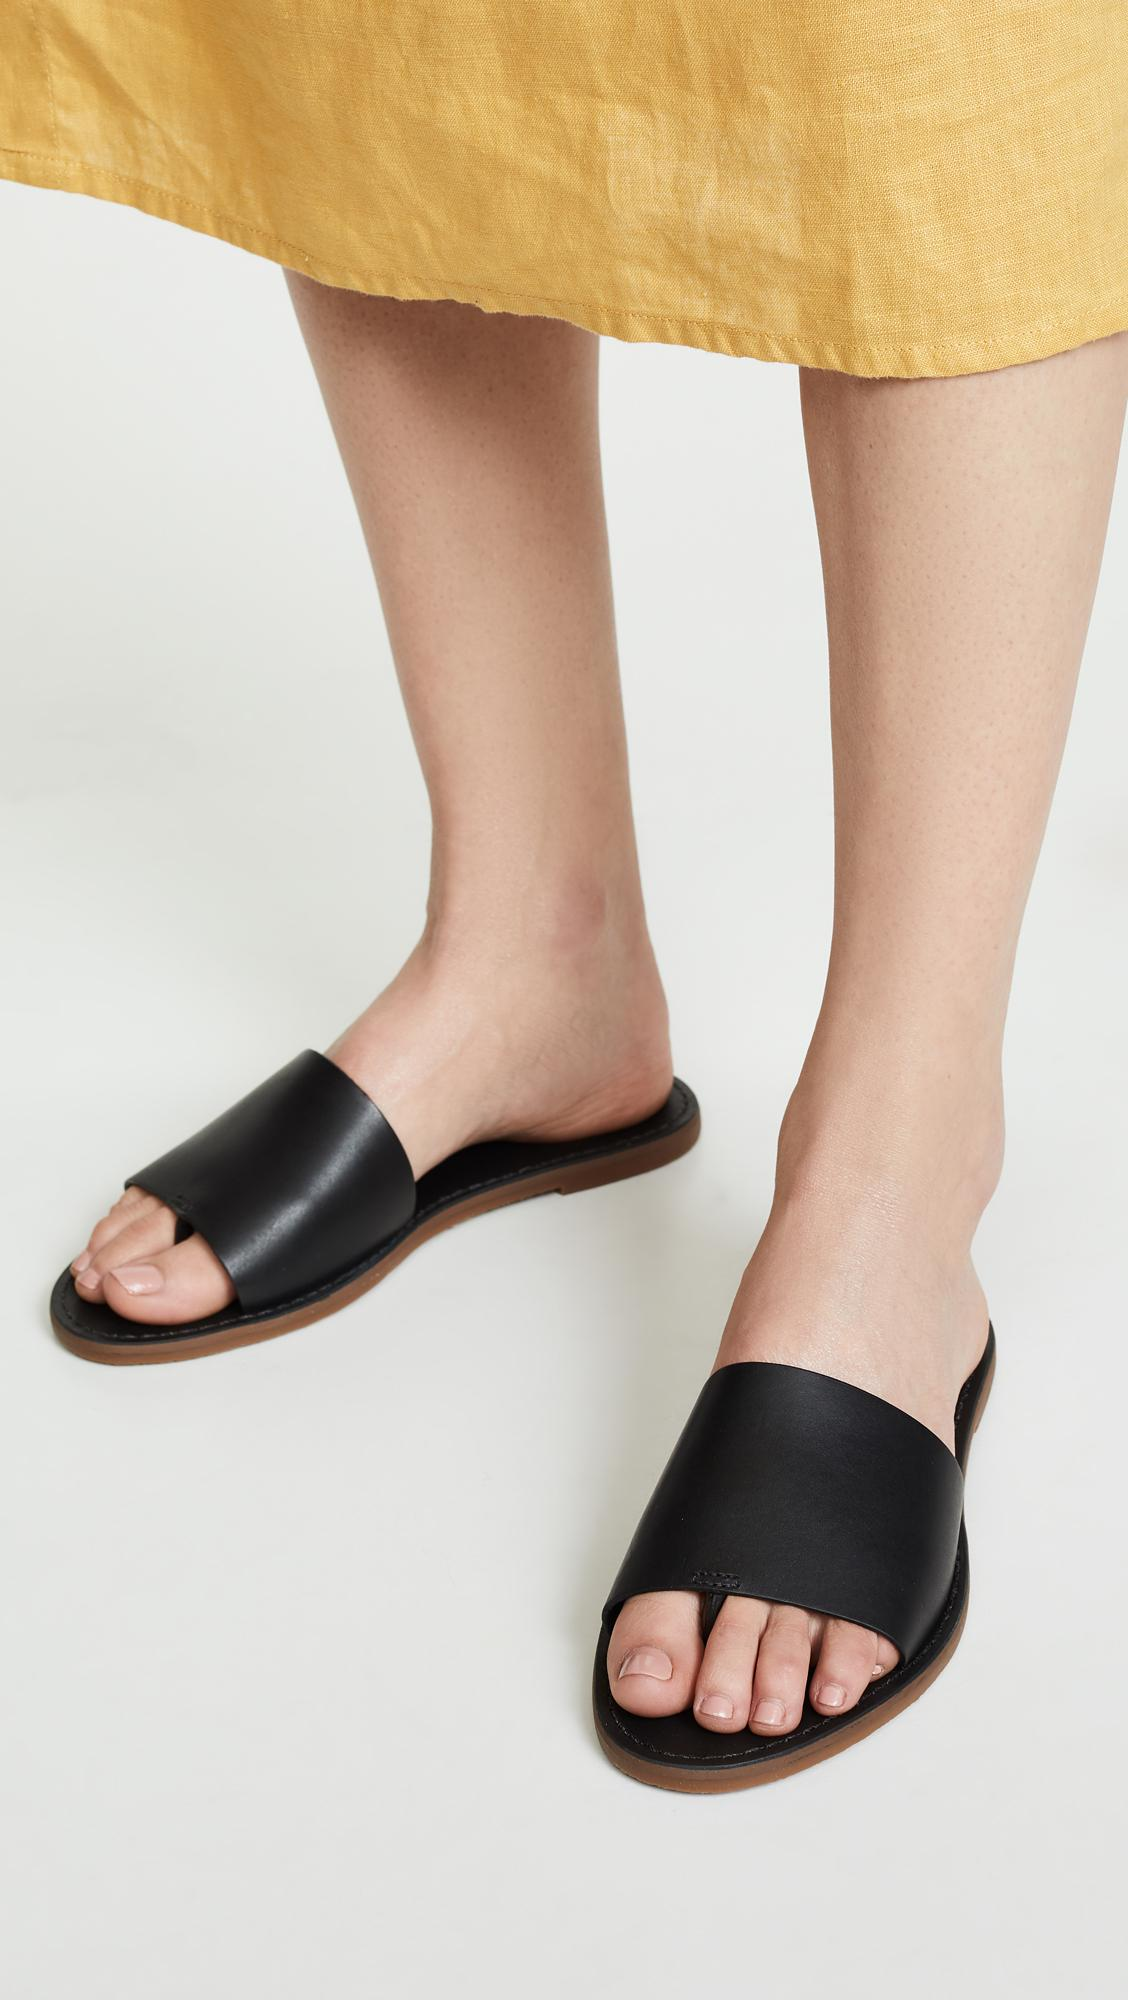 50a67122b95e83 Lyst - Madewell The Boardwalk Post Slide Sandals in Black